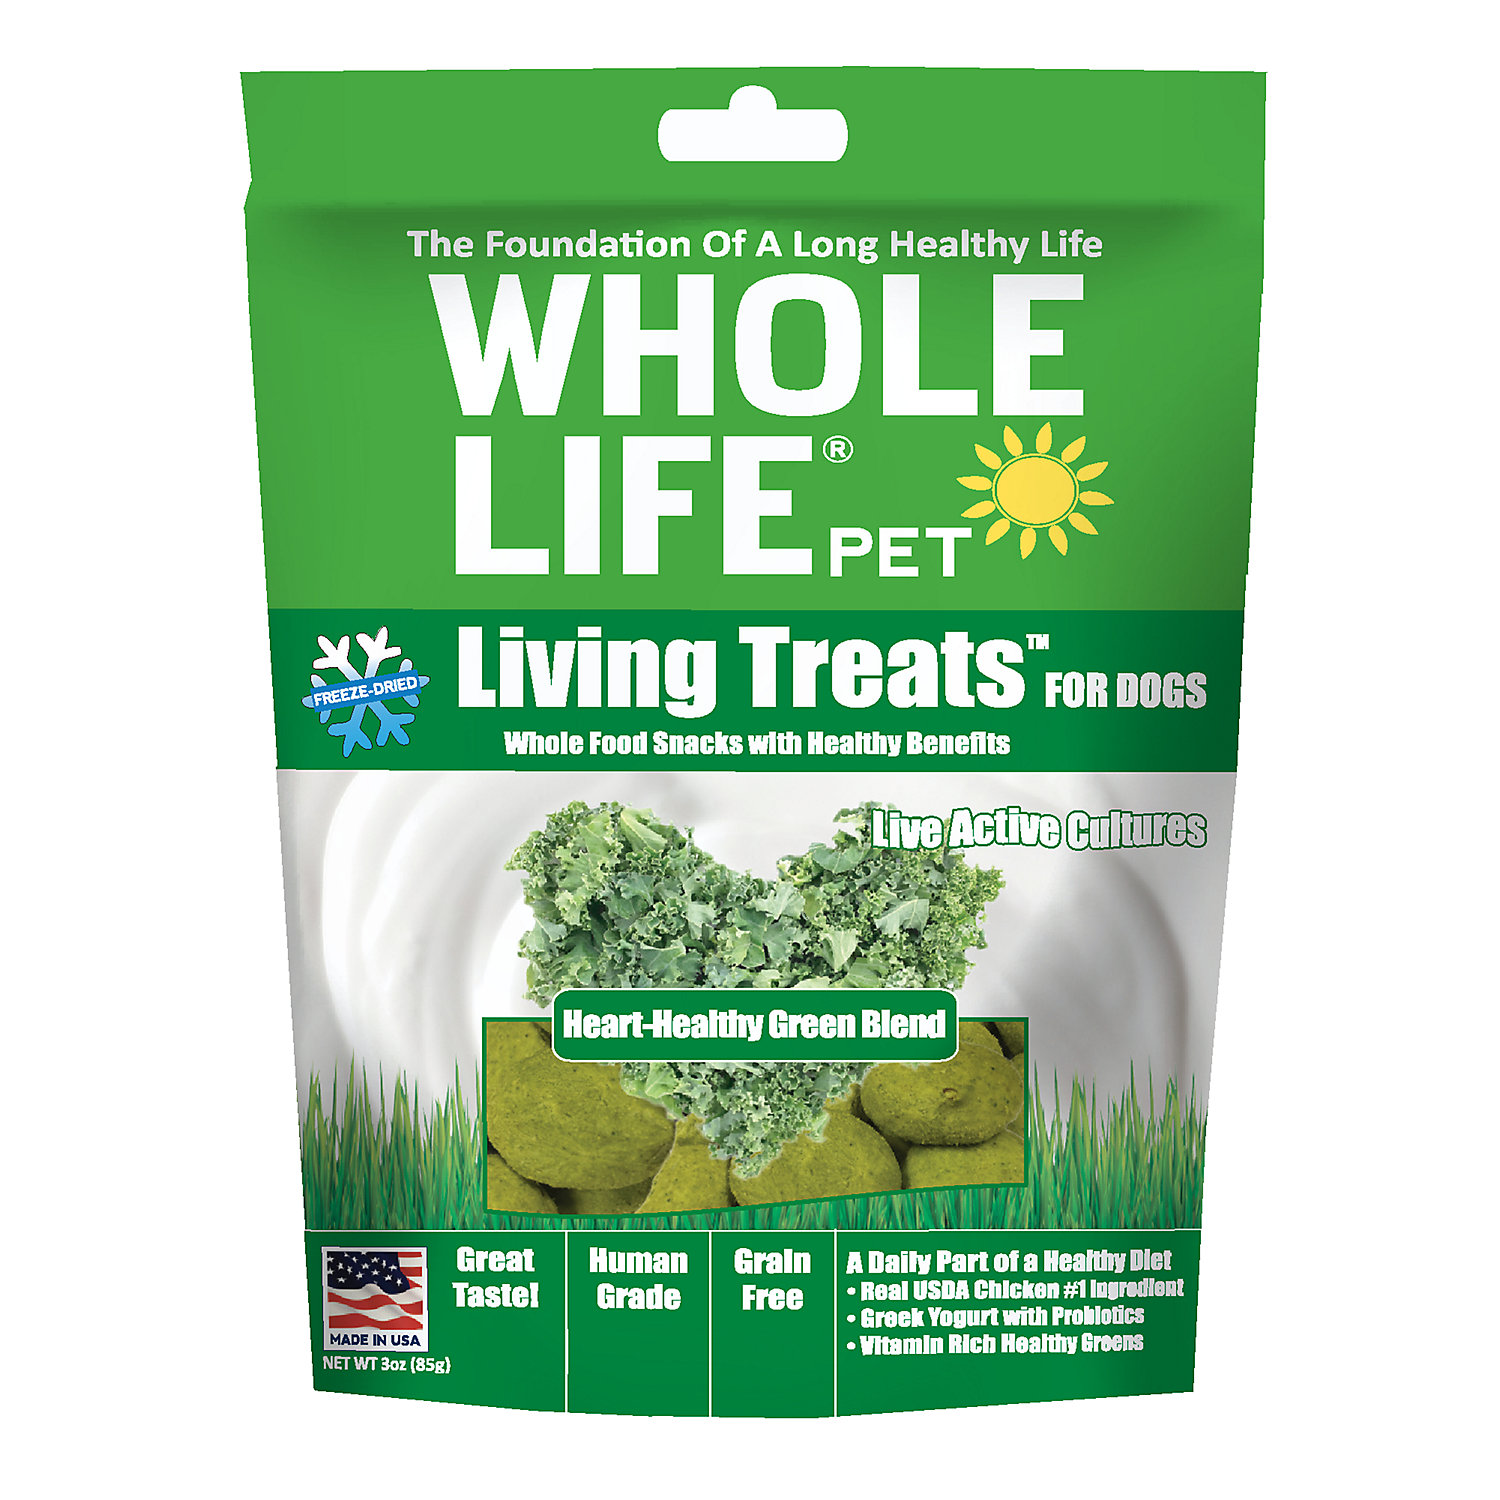 Whole Life Pet Living Treats Usa Freeze Dried Green Blend Treats For Dogs, 3 Oz.